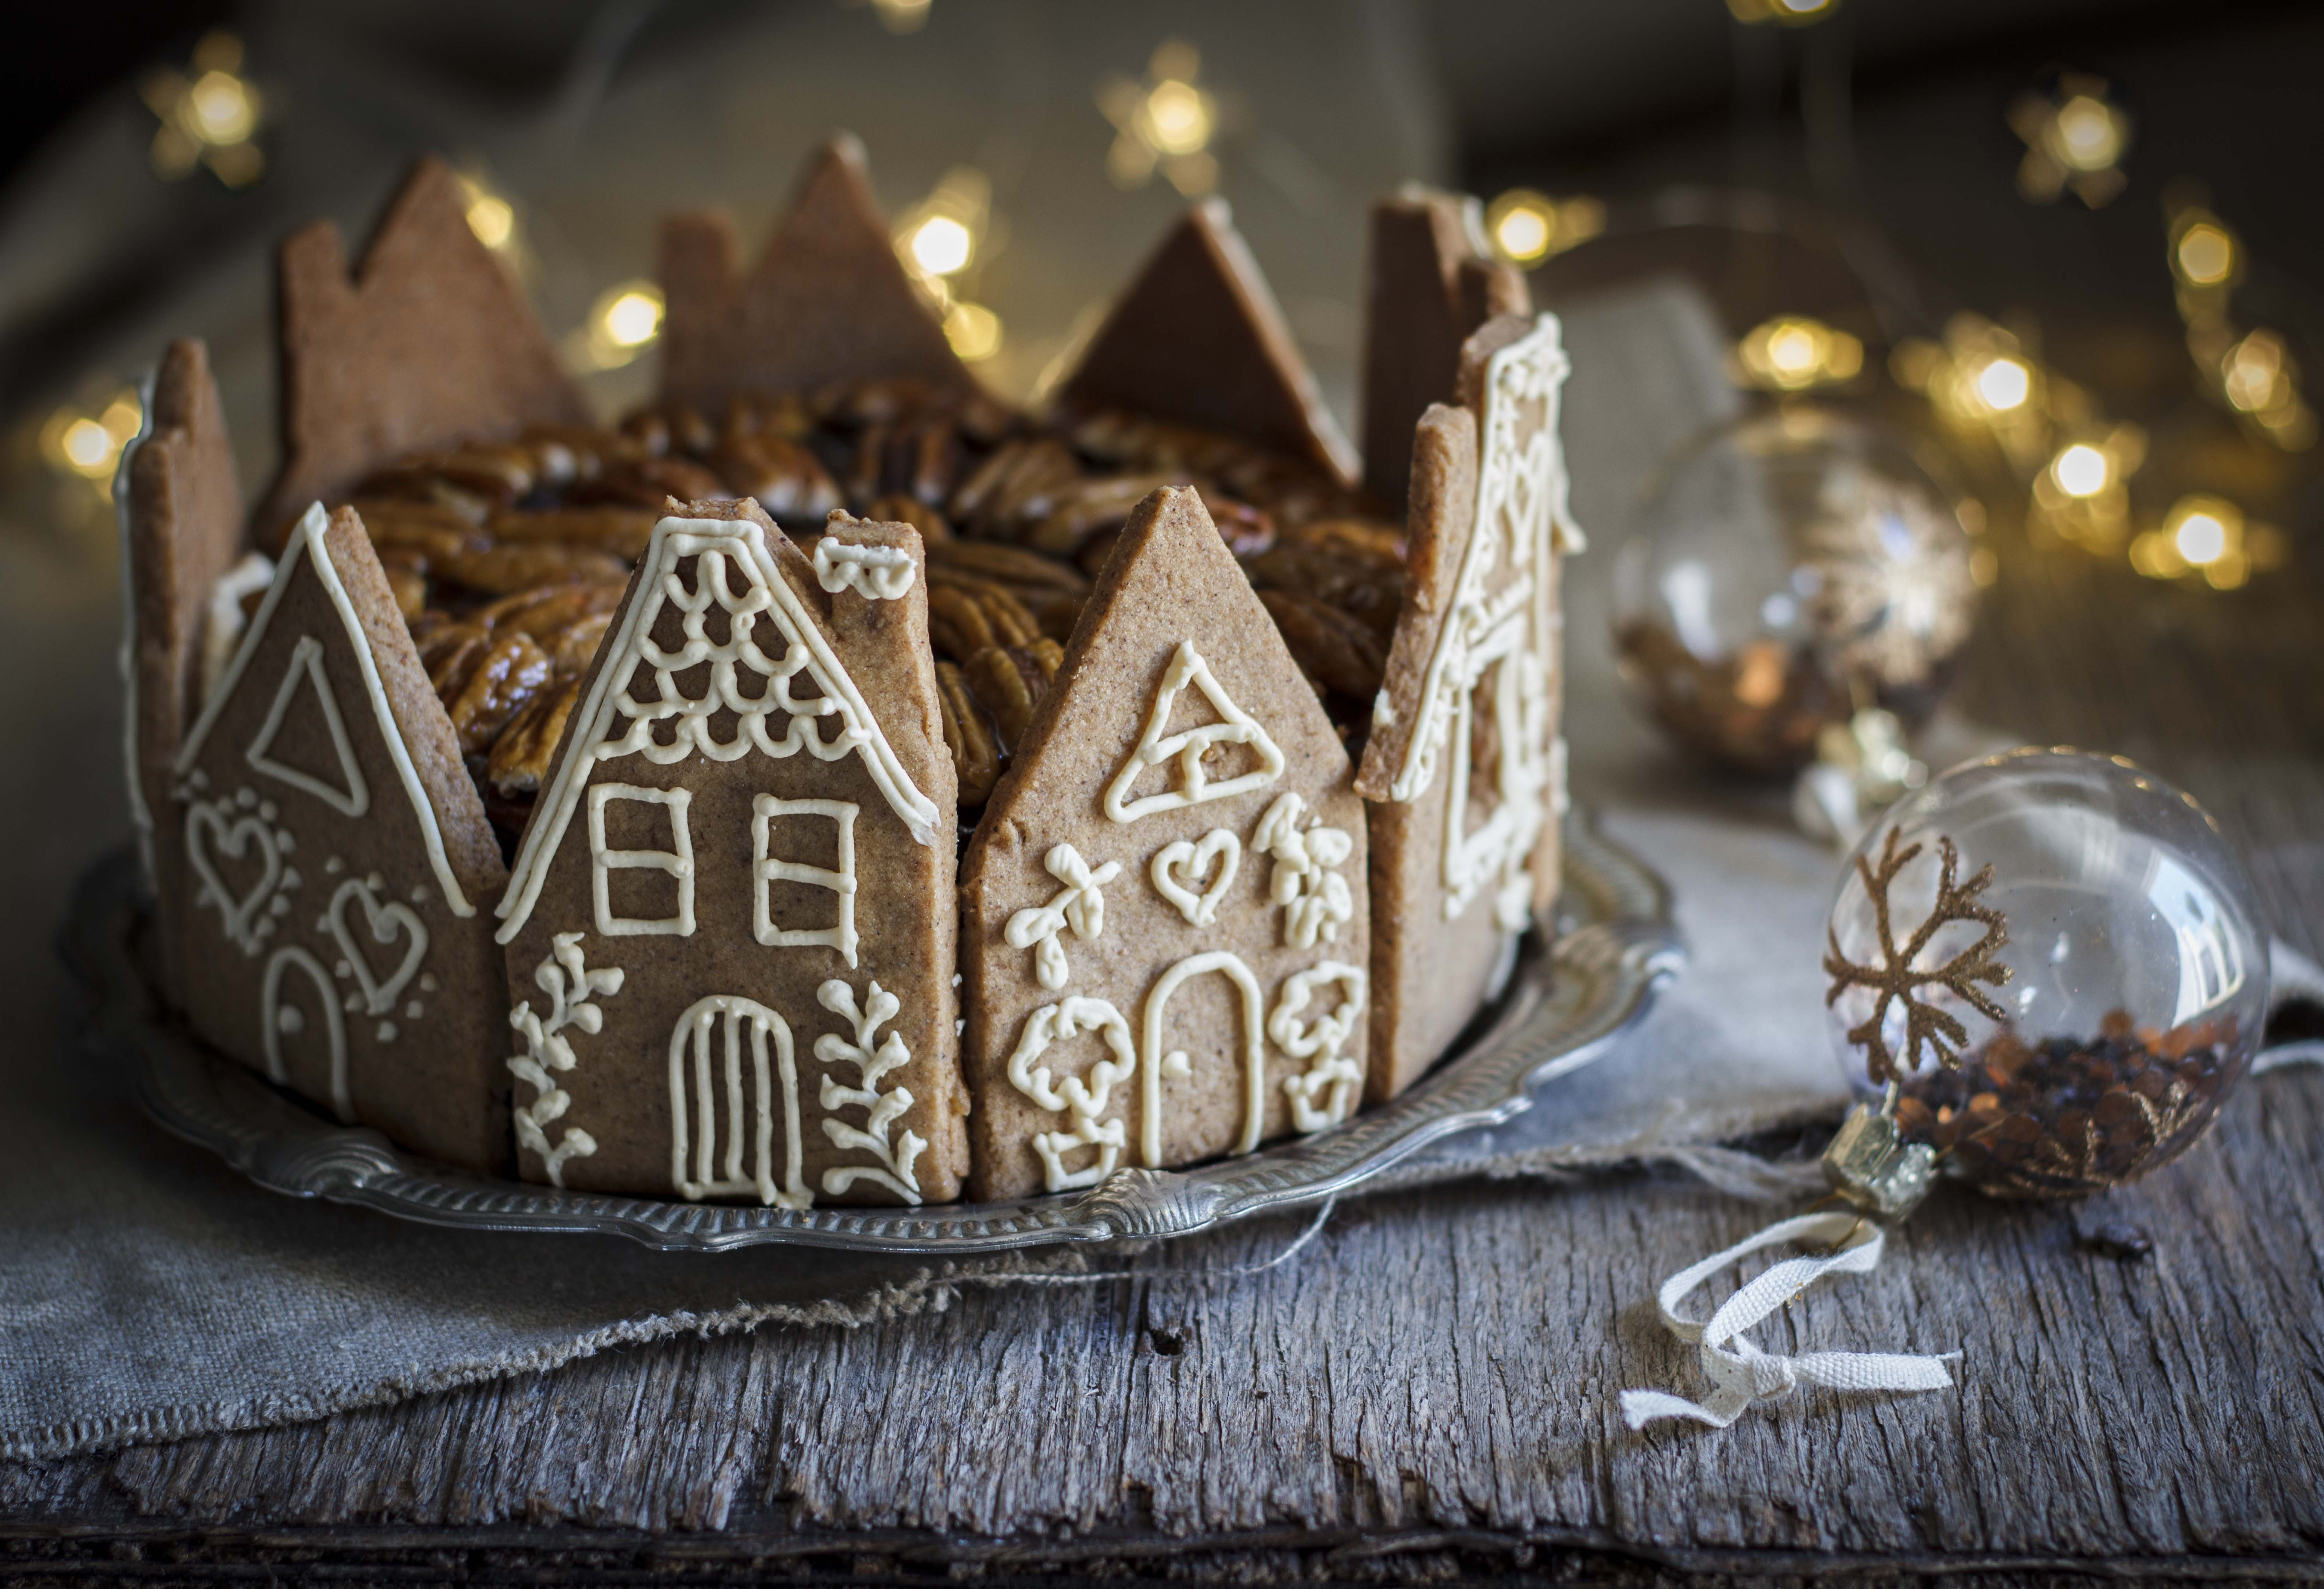 5 Ingredient Christmas Cake With Gingerbread Houses The